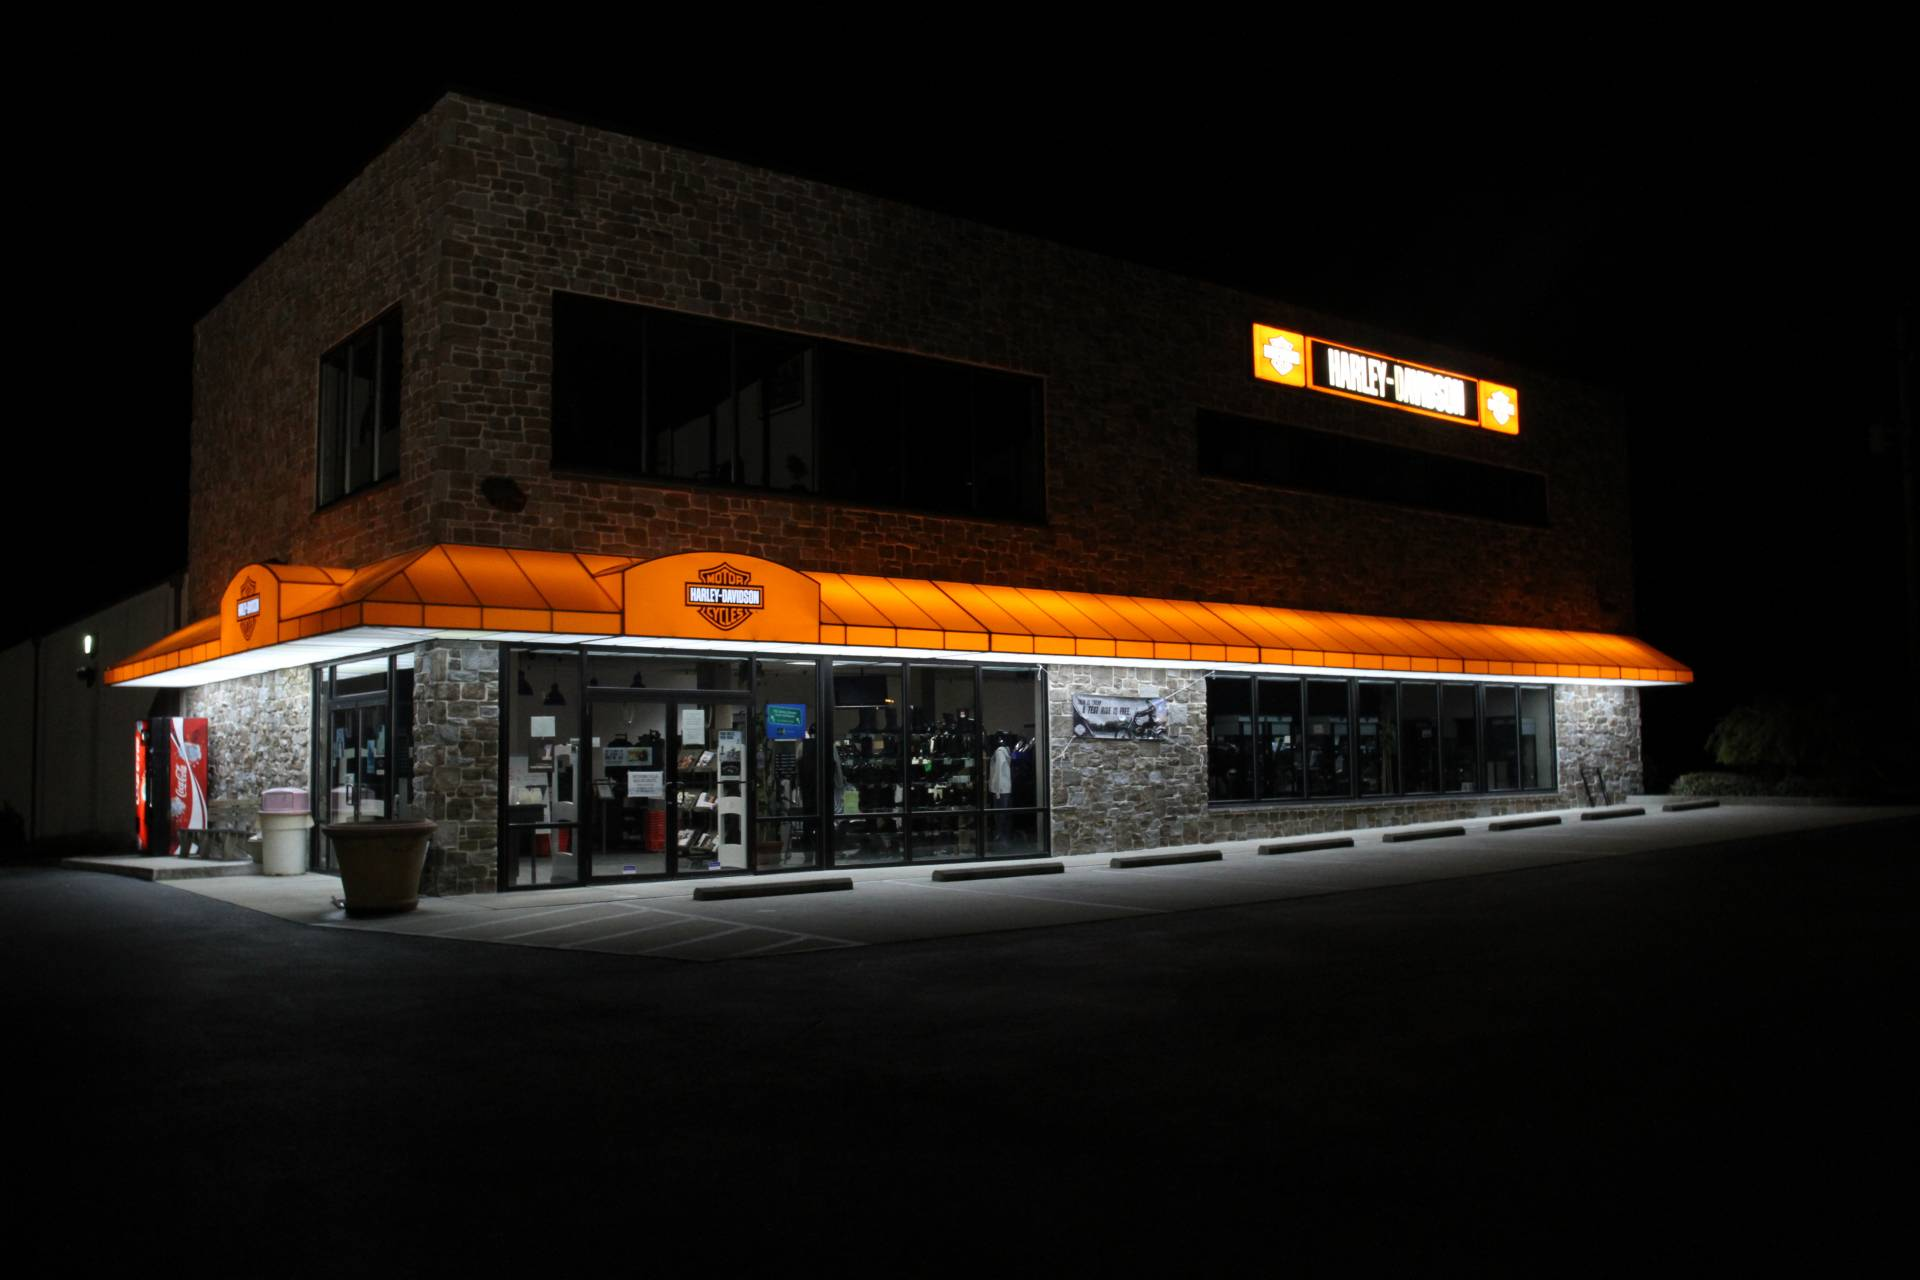 Backlit Awning Service Entrance At Lancaster Harley